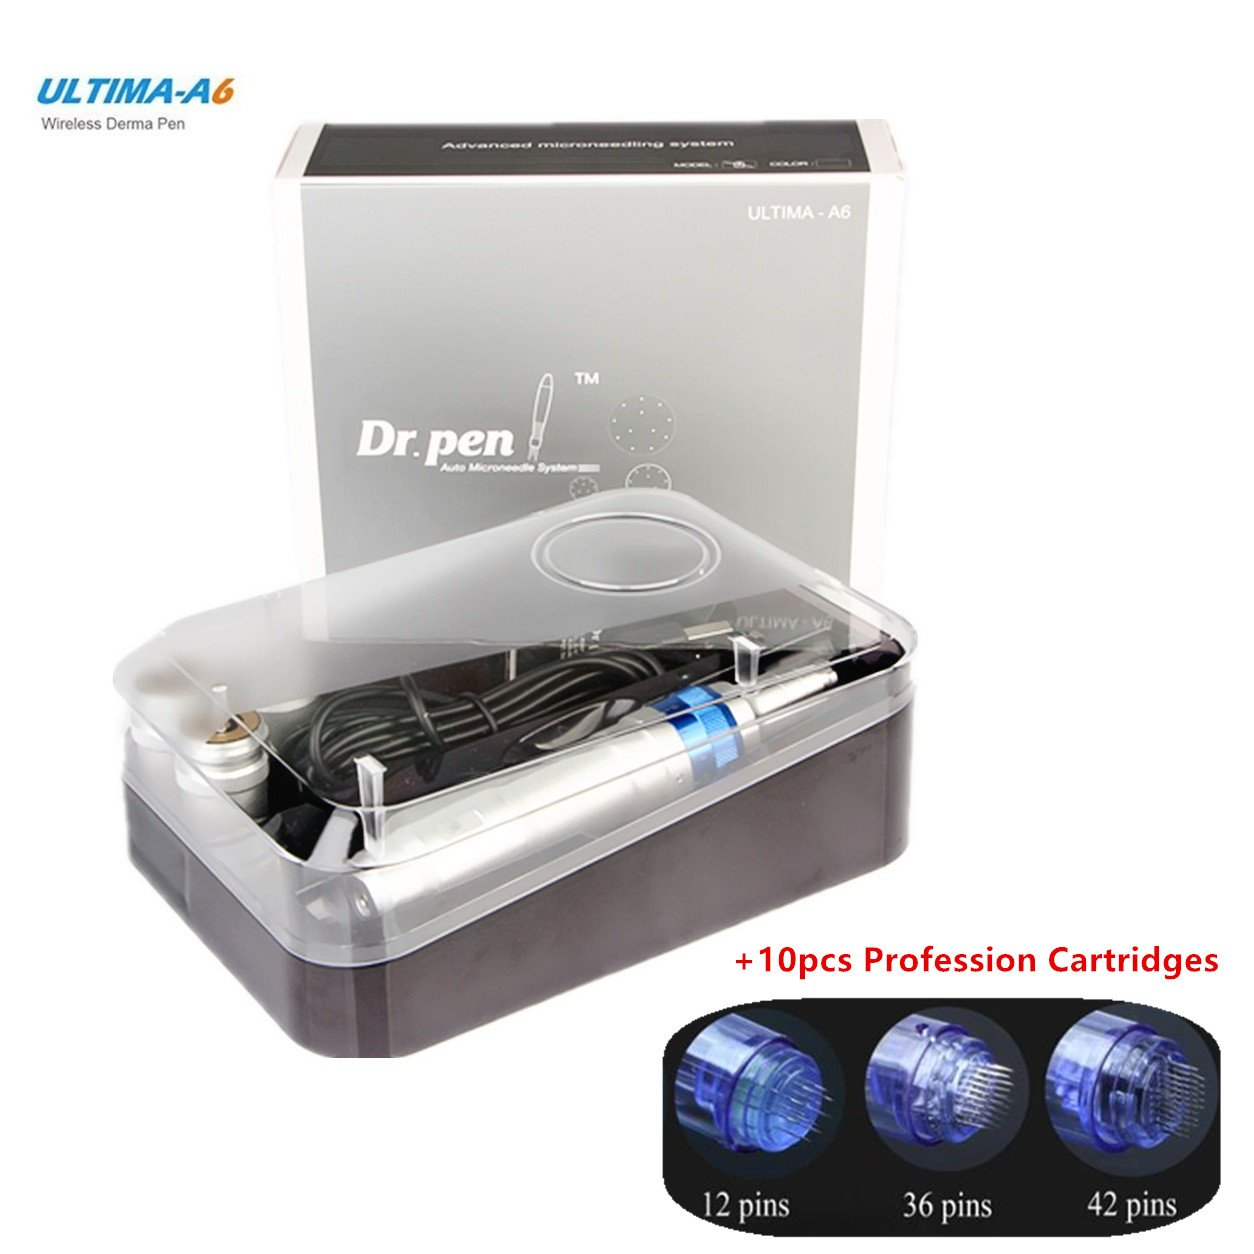 Dr. Pen Ultima A6 Rechargeable Therapy Professional System & Dr Pen A6 Accessories - for Scars, Acne, Wrinkles, Spot Removal, Hydrating, Whitening (2 Batteries+10PCS Cartridges)